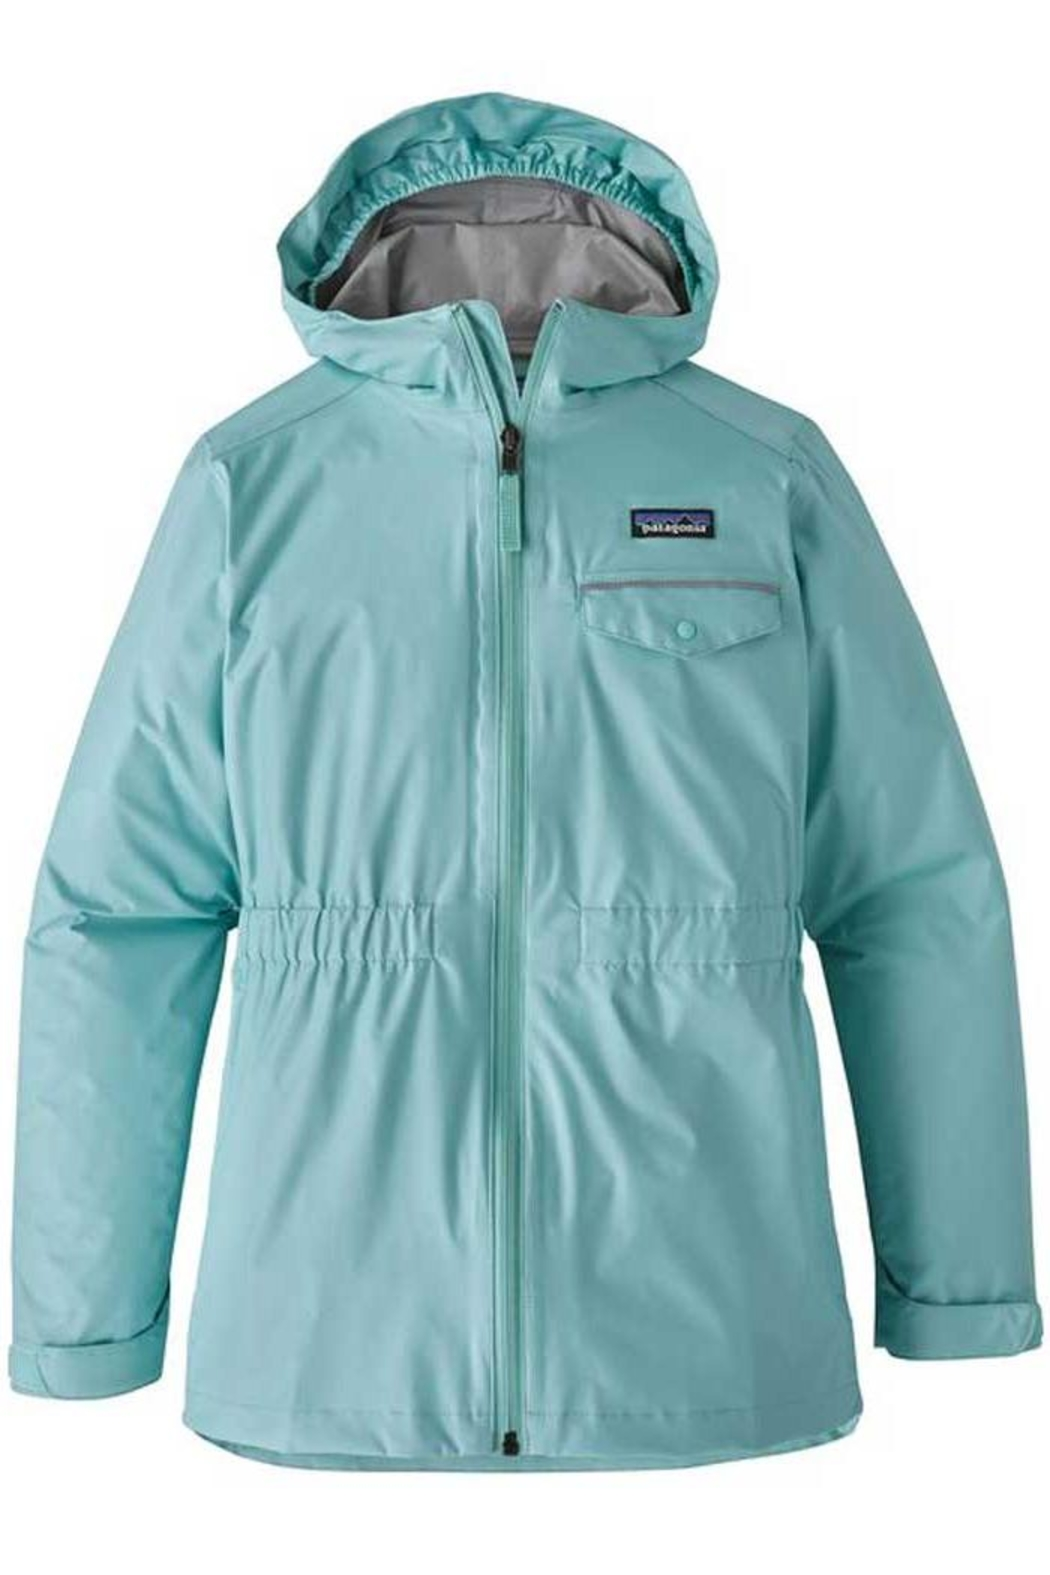 Patagonia Girl's Torrentshell Rain-Jacket - Front Cropped Image